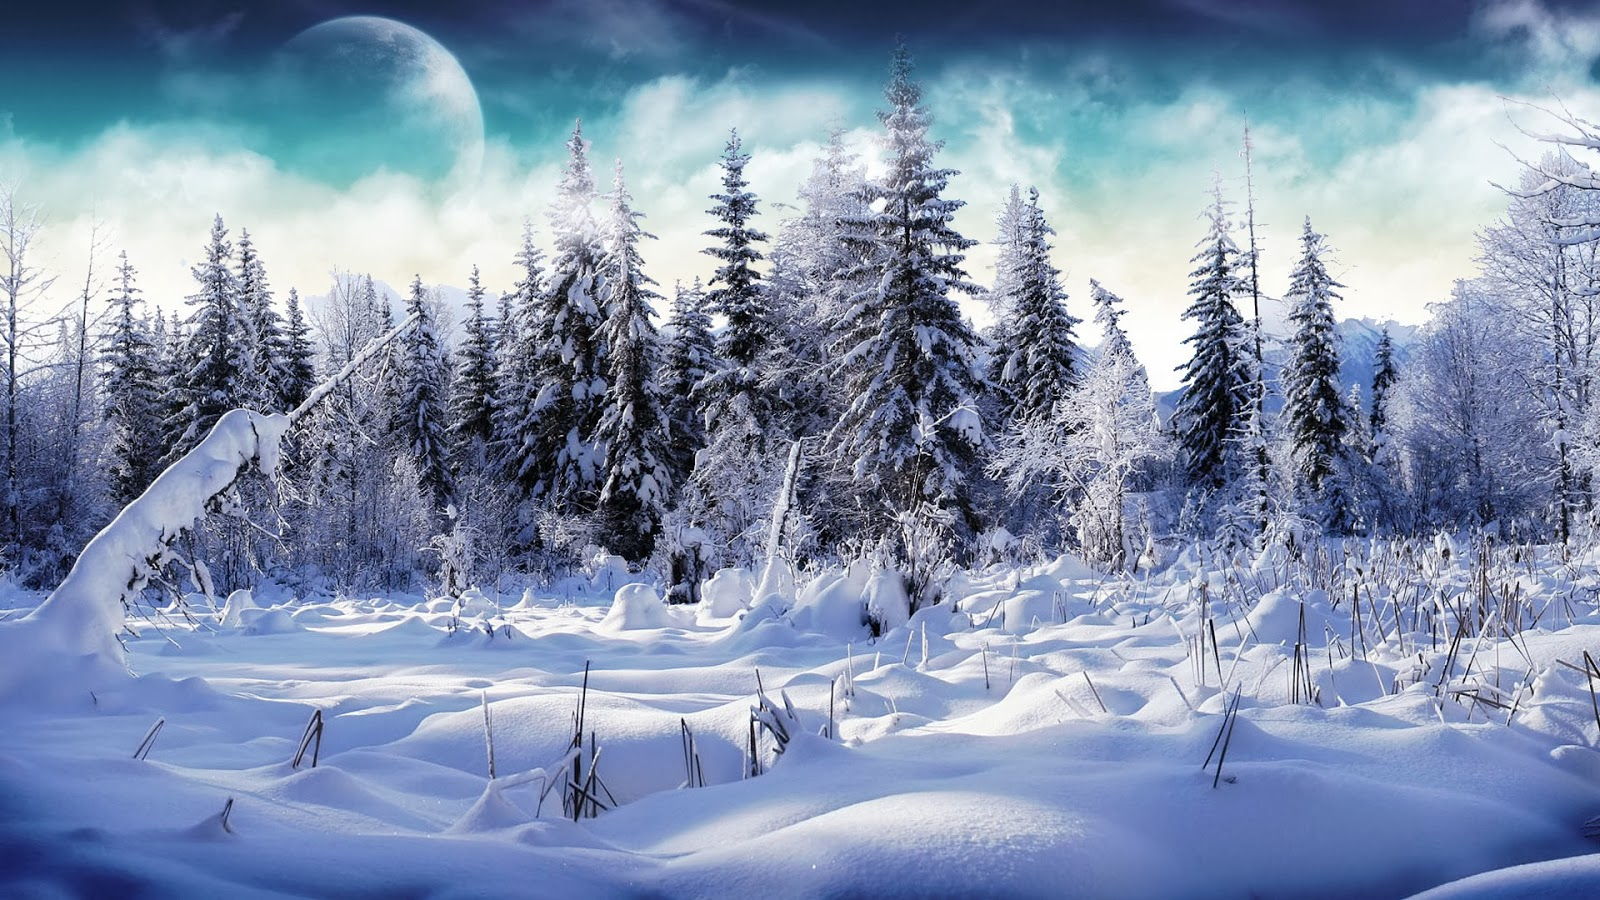 Snow Fall Winter HD Wallpapers   HD Wallpapers Blog 1600x900